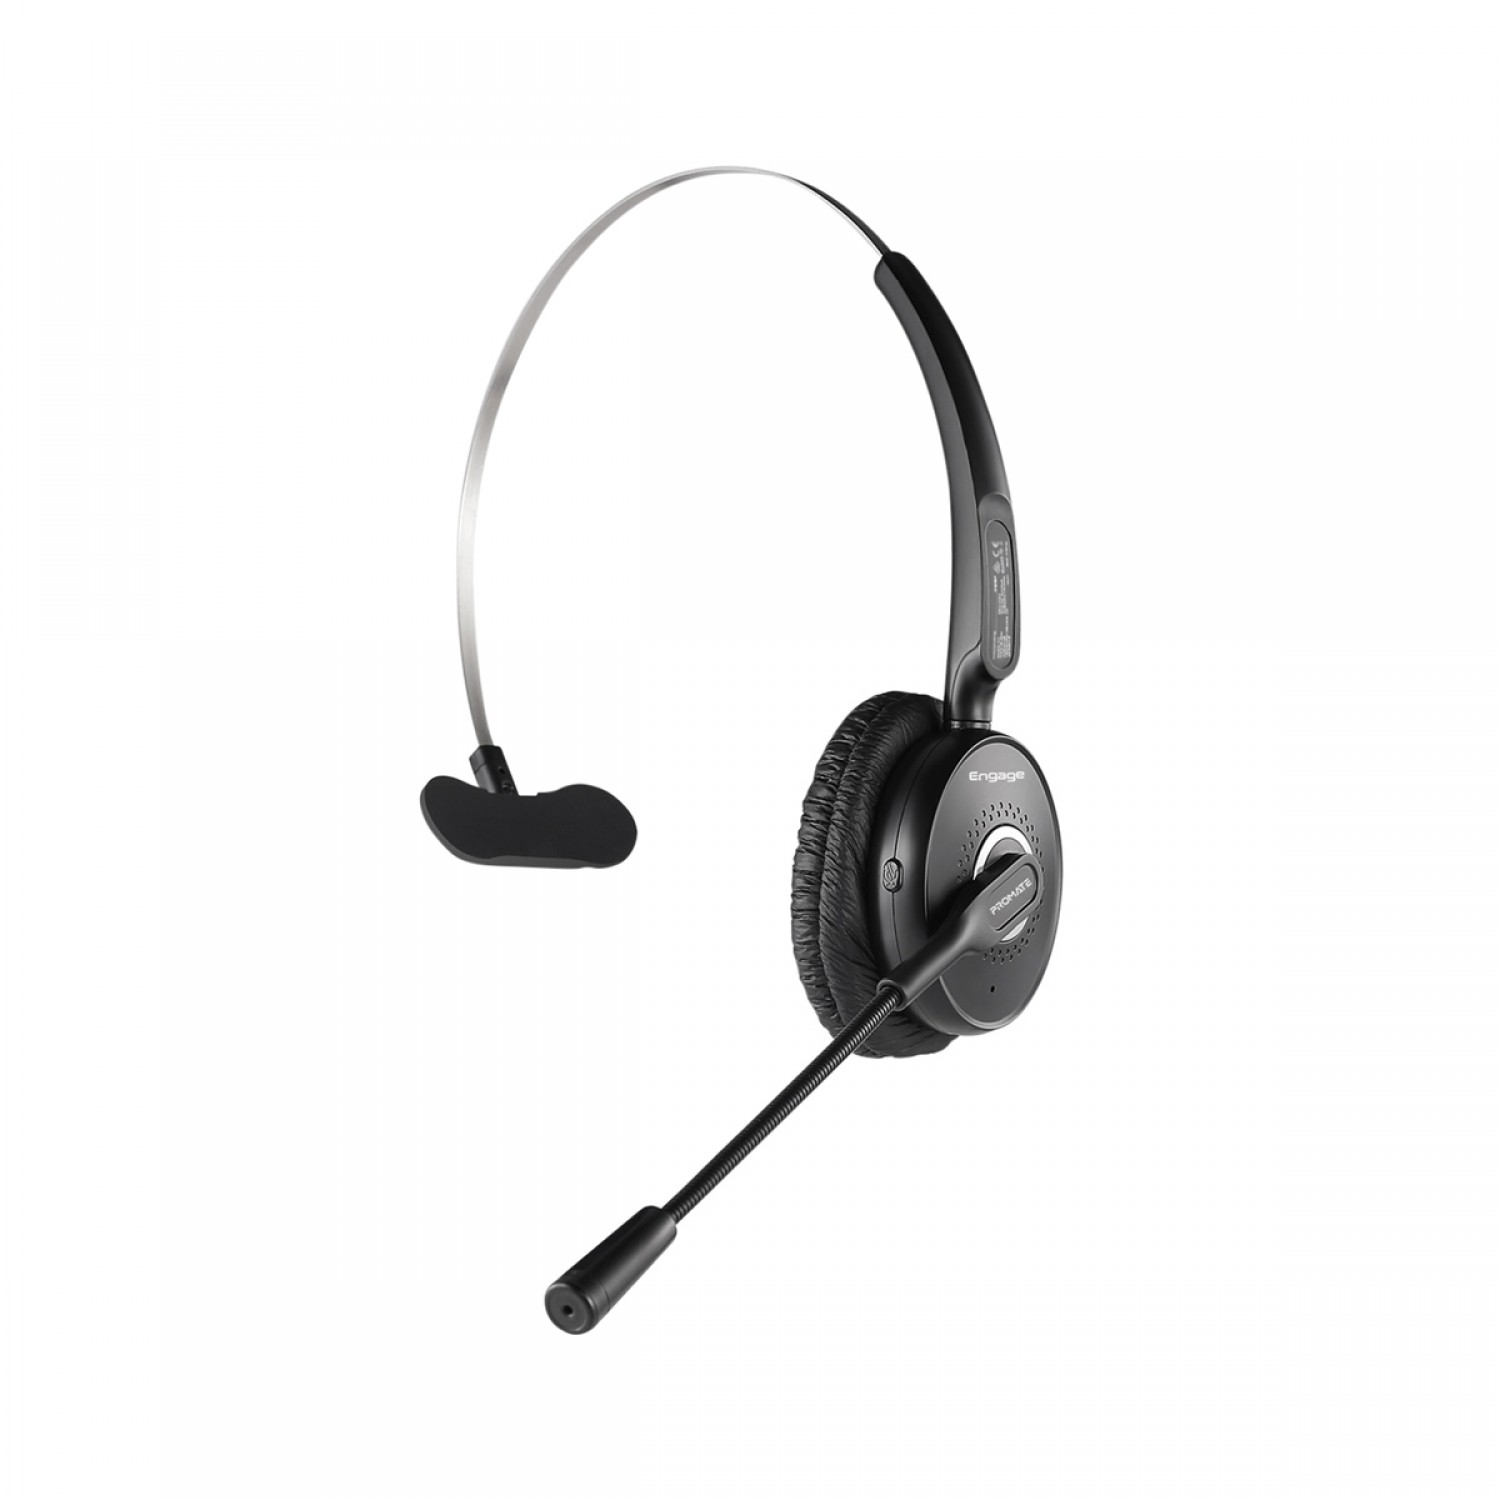 Promate Wireless Mono Headset, Premium Bluetooth Headphone with Noise Cancelling Mic, HD Voice, Built-In Controls and Adjustable Fit Headband for Skype, Stage Speaker, Teaching, Engage